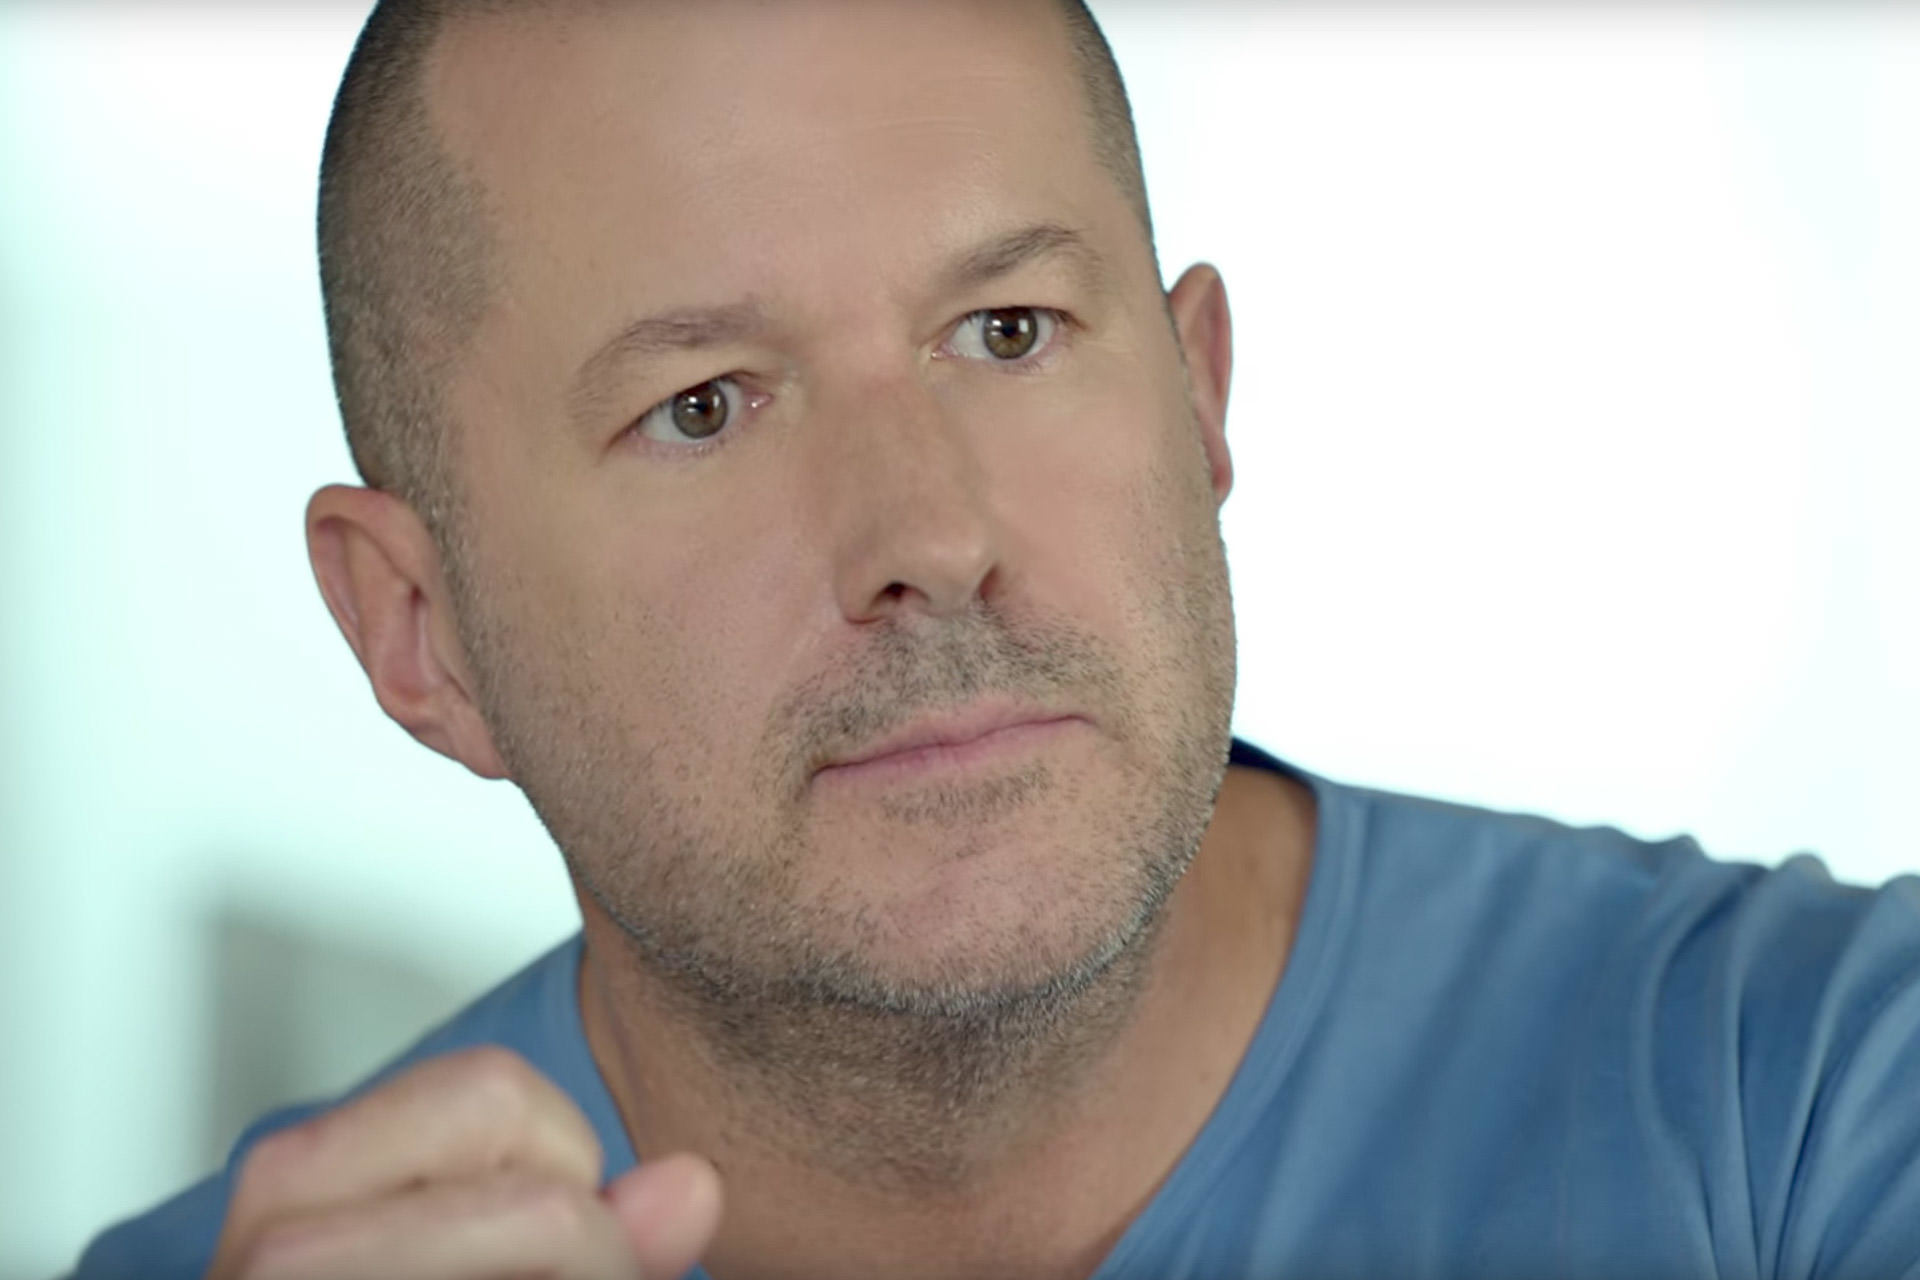 Jonathan Ive Talks About The Challenges As a Designer